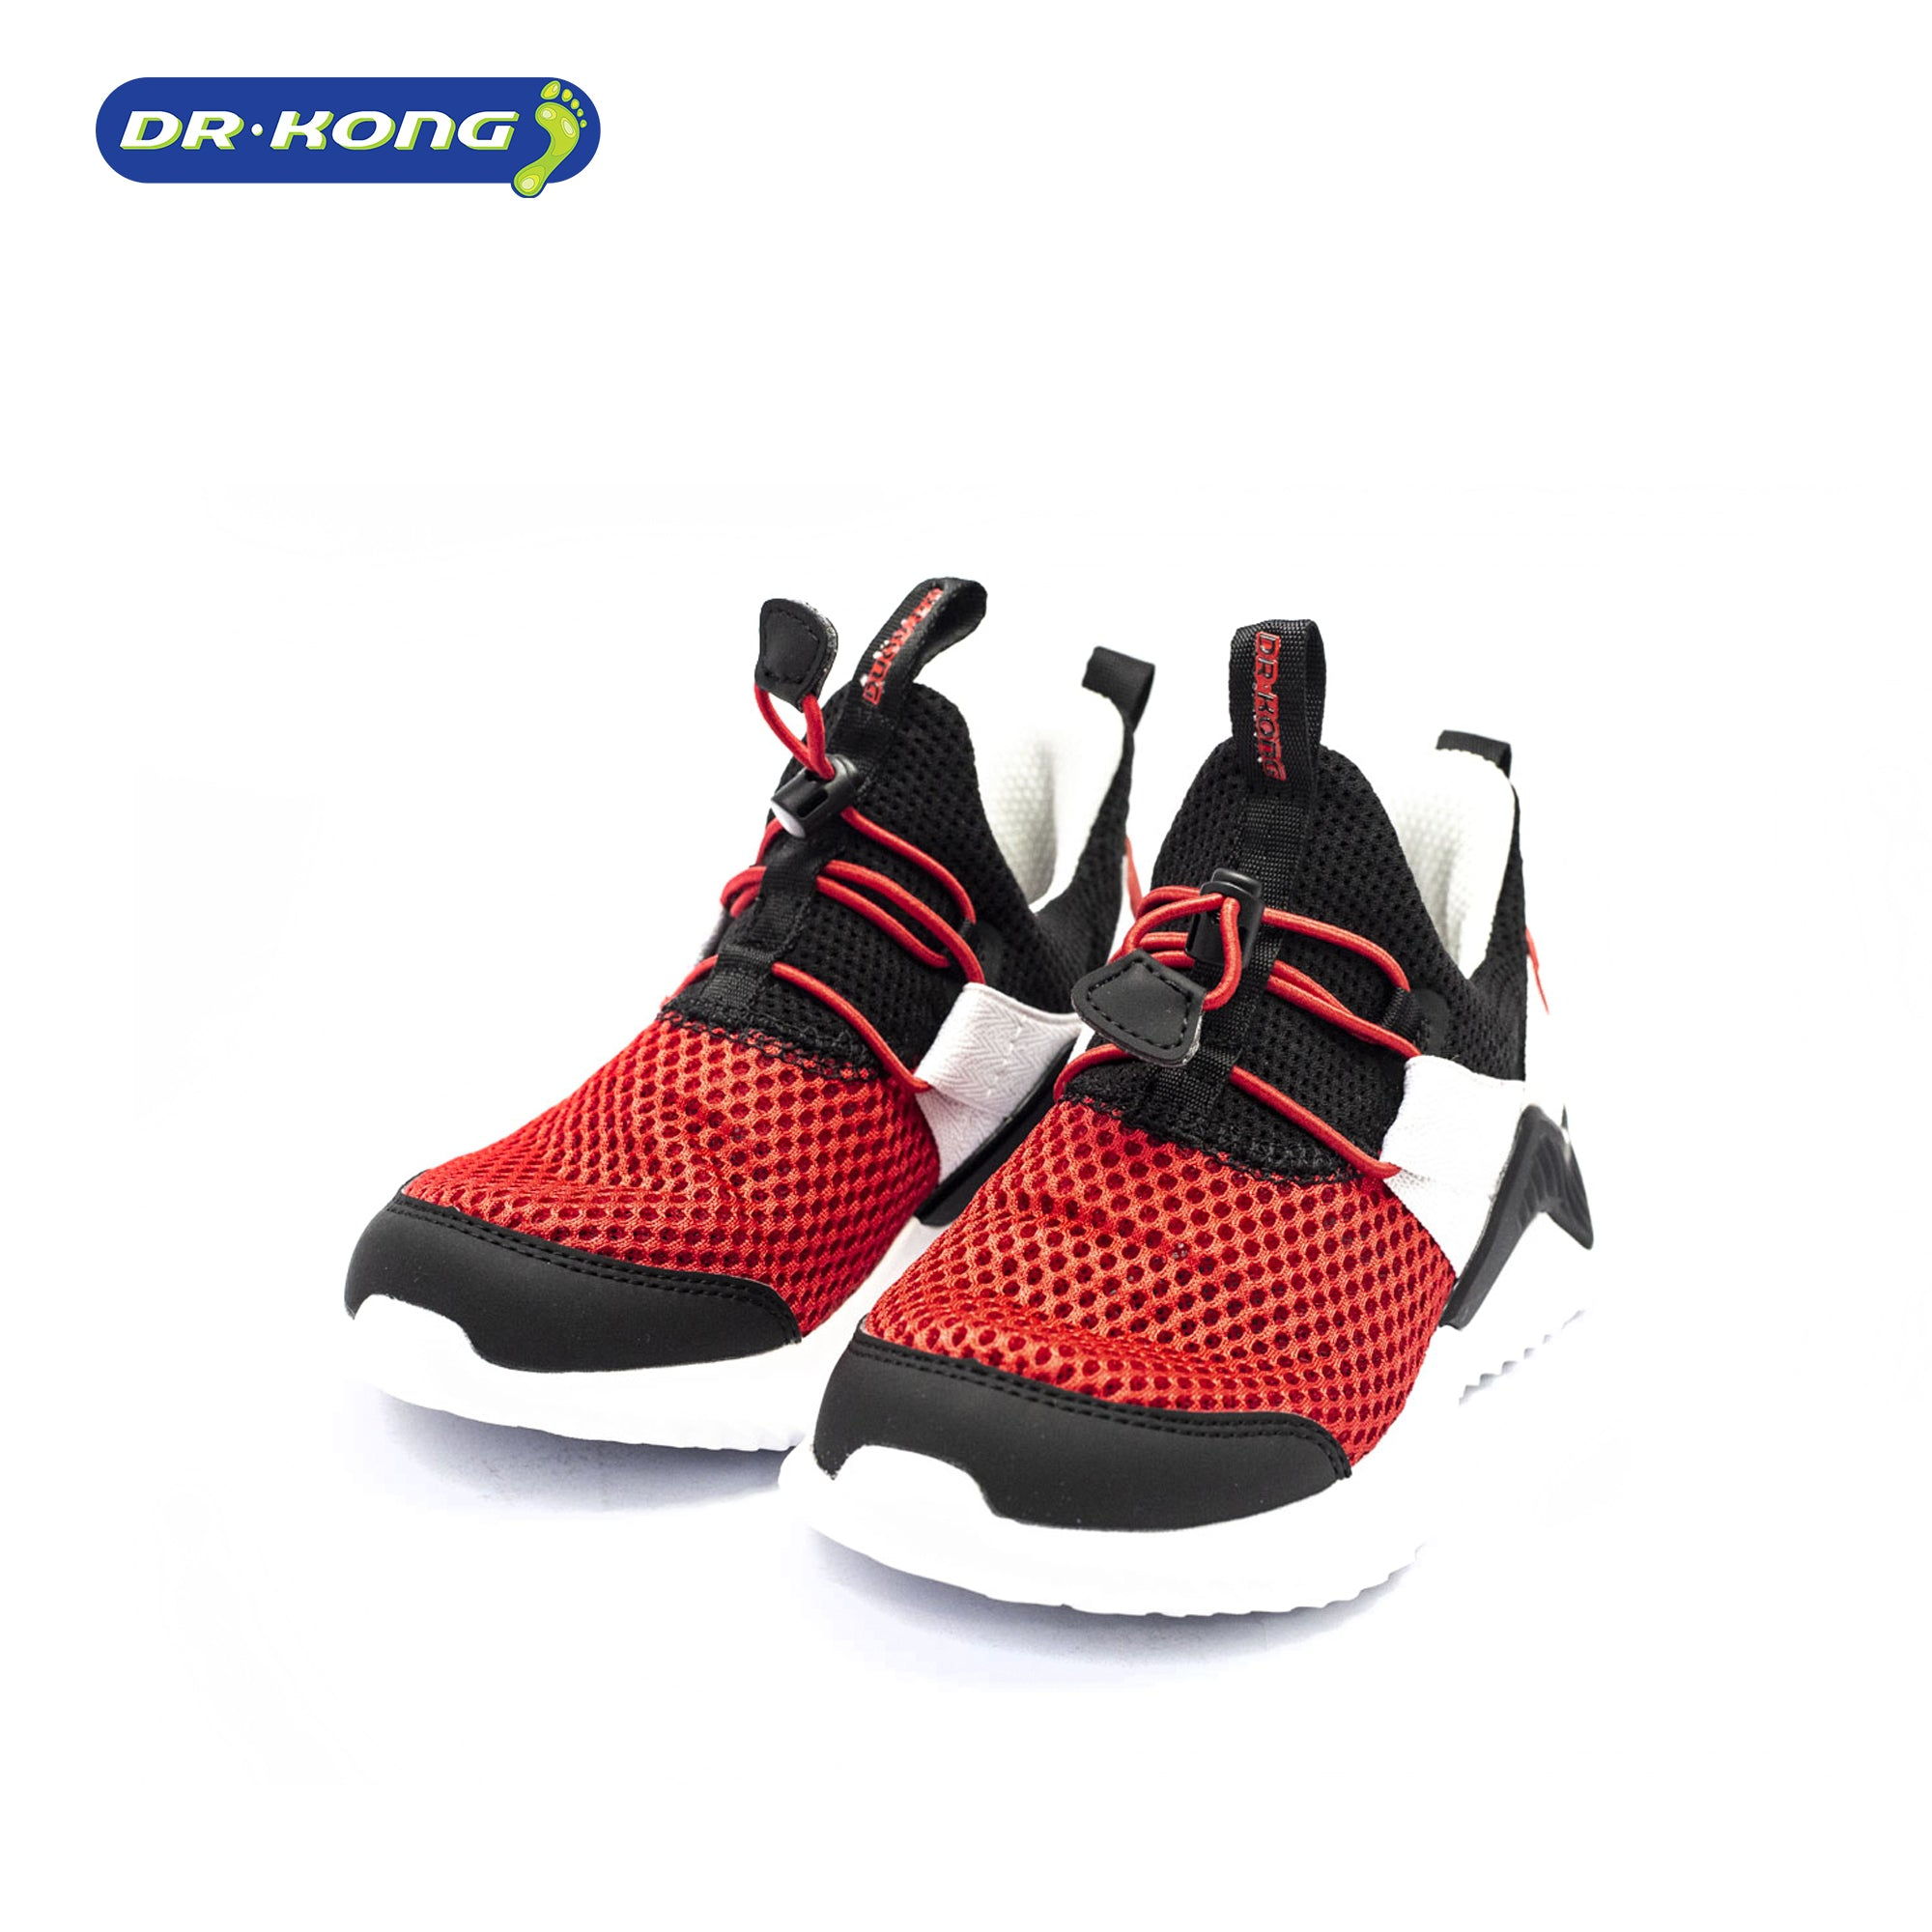 Dr. Kong Healthy Childrens Sneakers (Black Red) C1000331